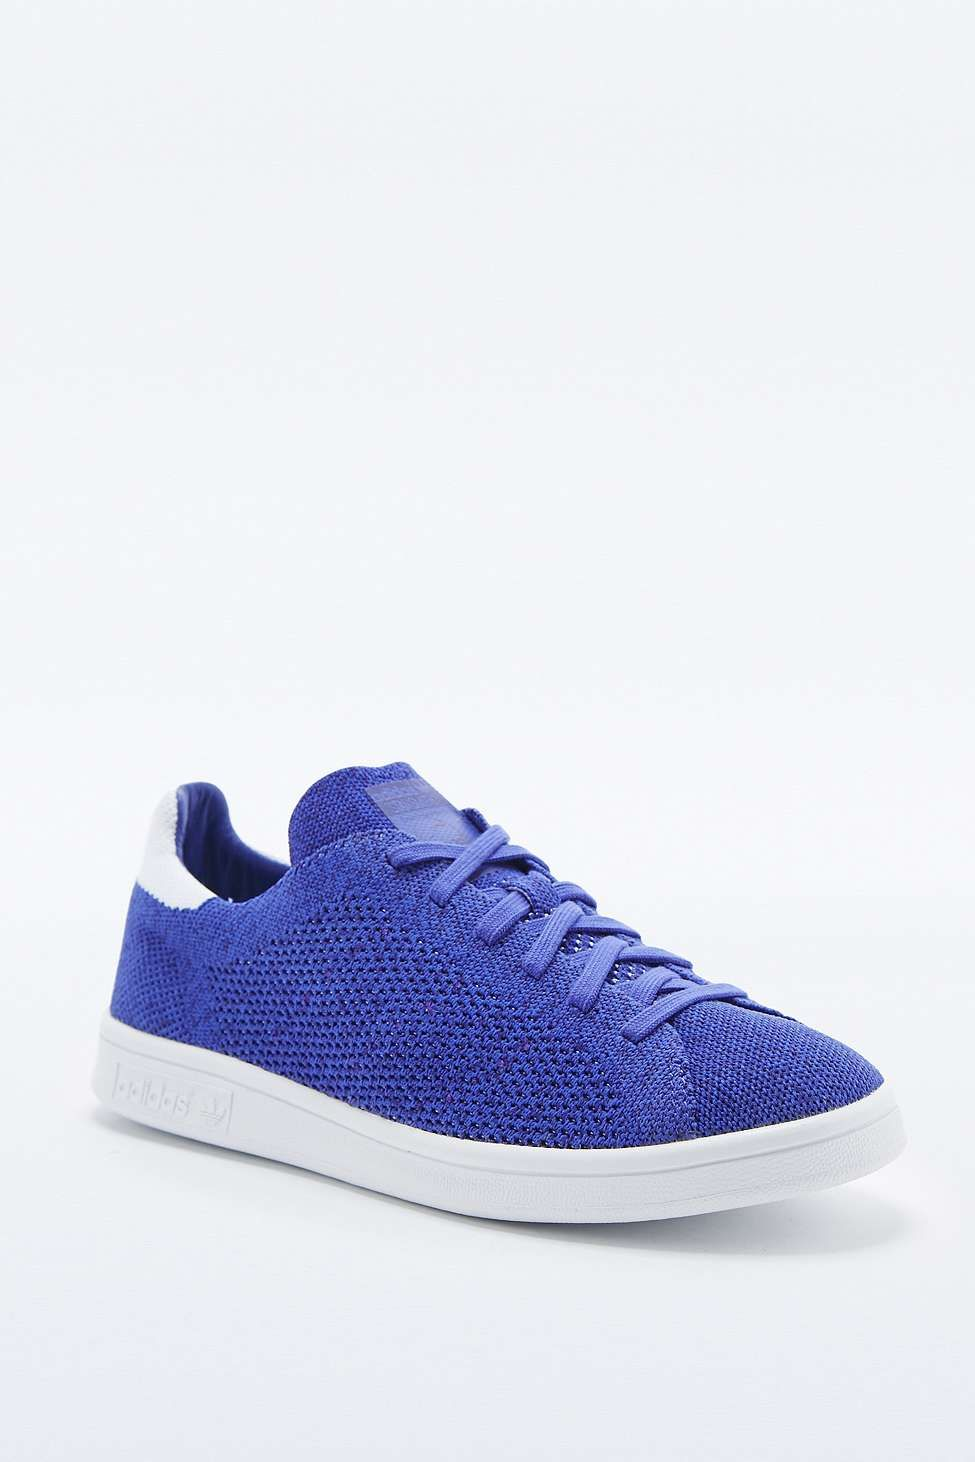 adidas Originals Stan Smith Prime Knit Purple Trainers